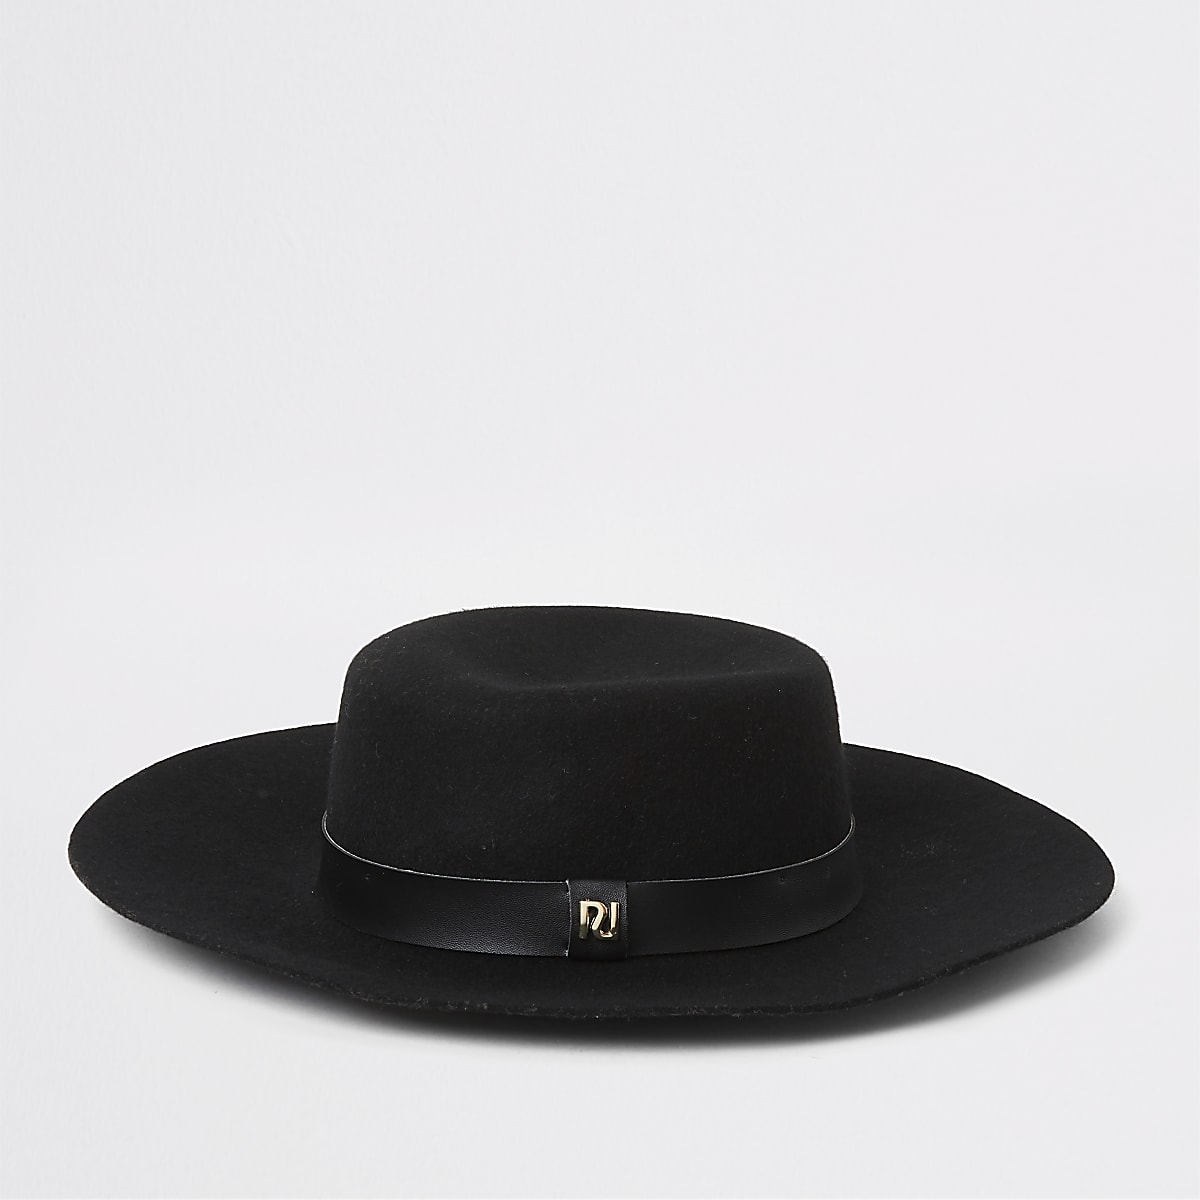 Black PU band fedora hat